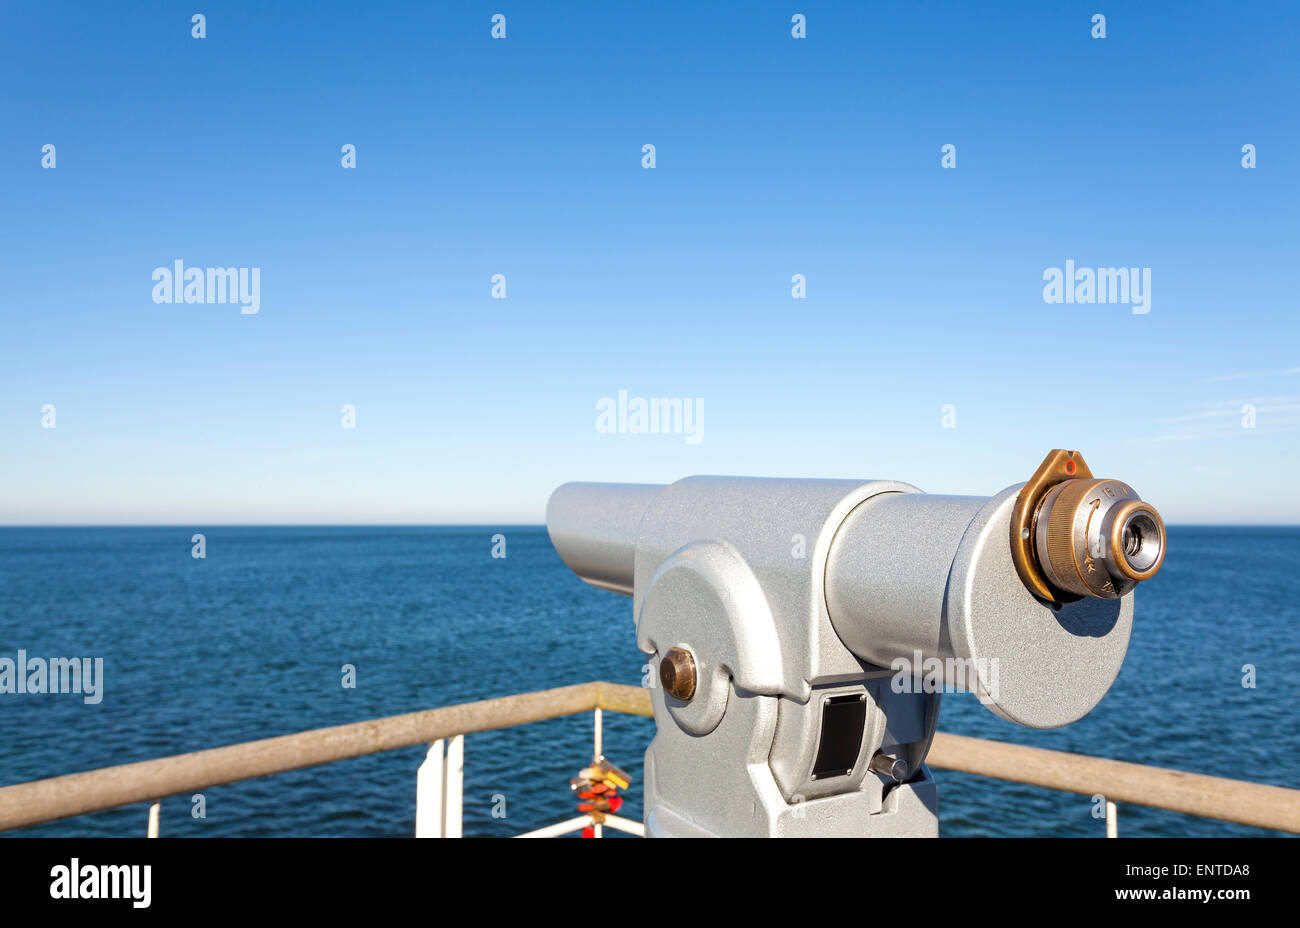 Telescope on a pier pointed at horizon, future concept. - Stock Image